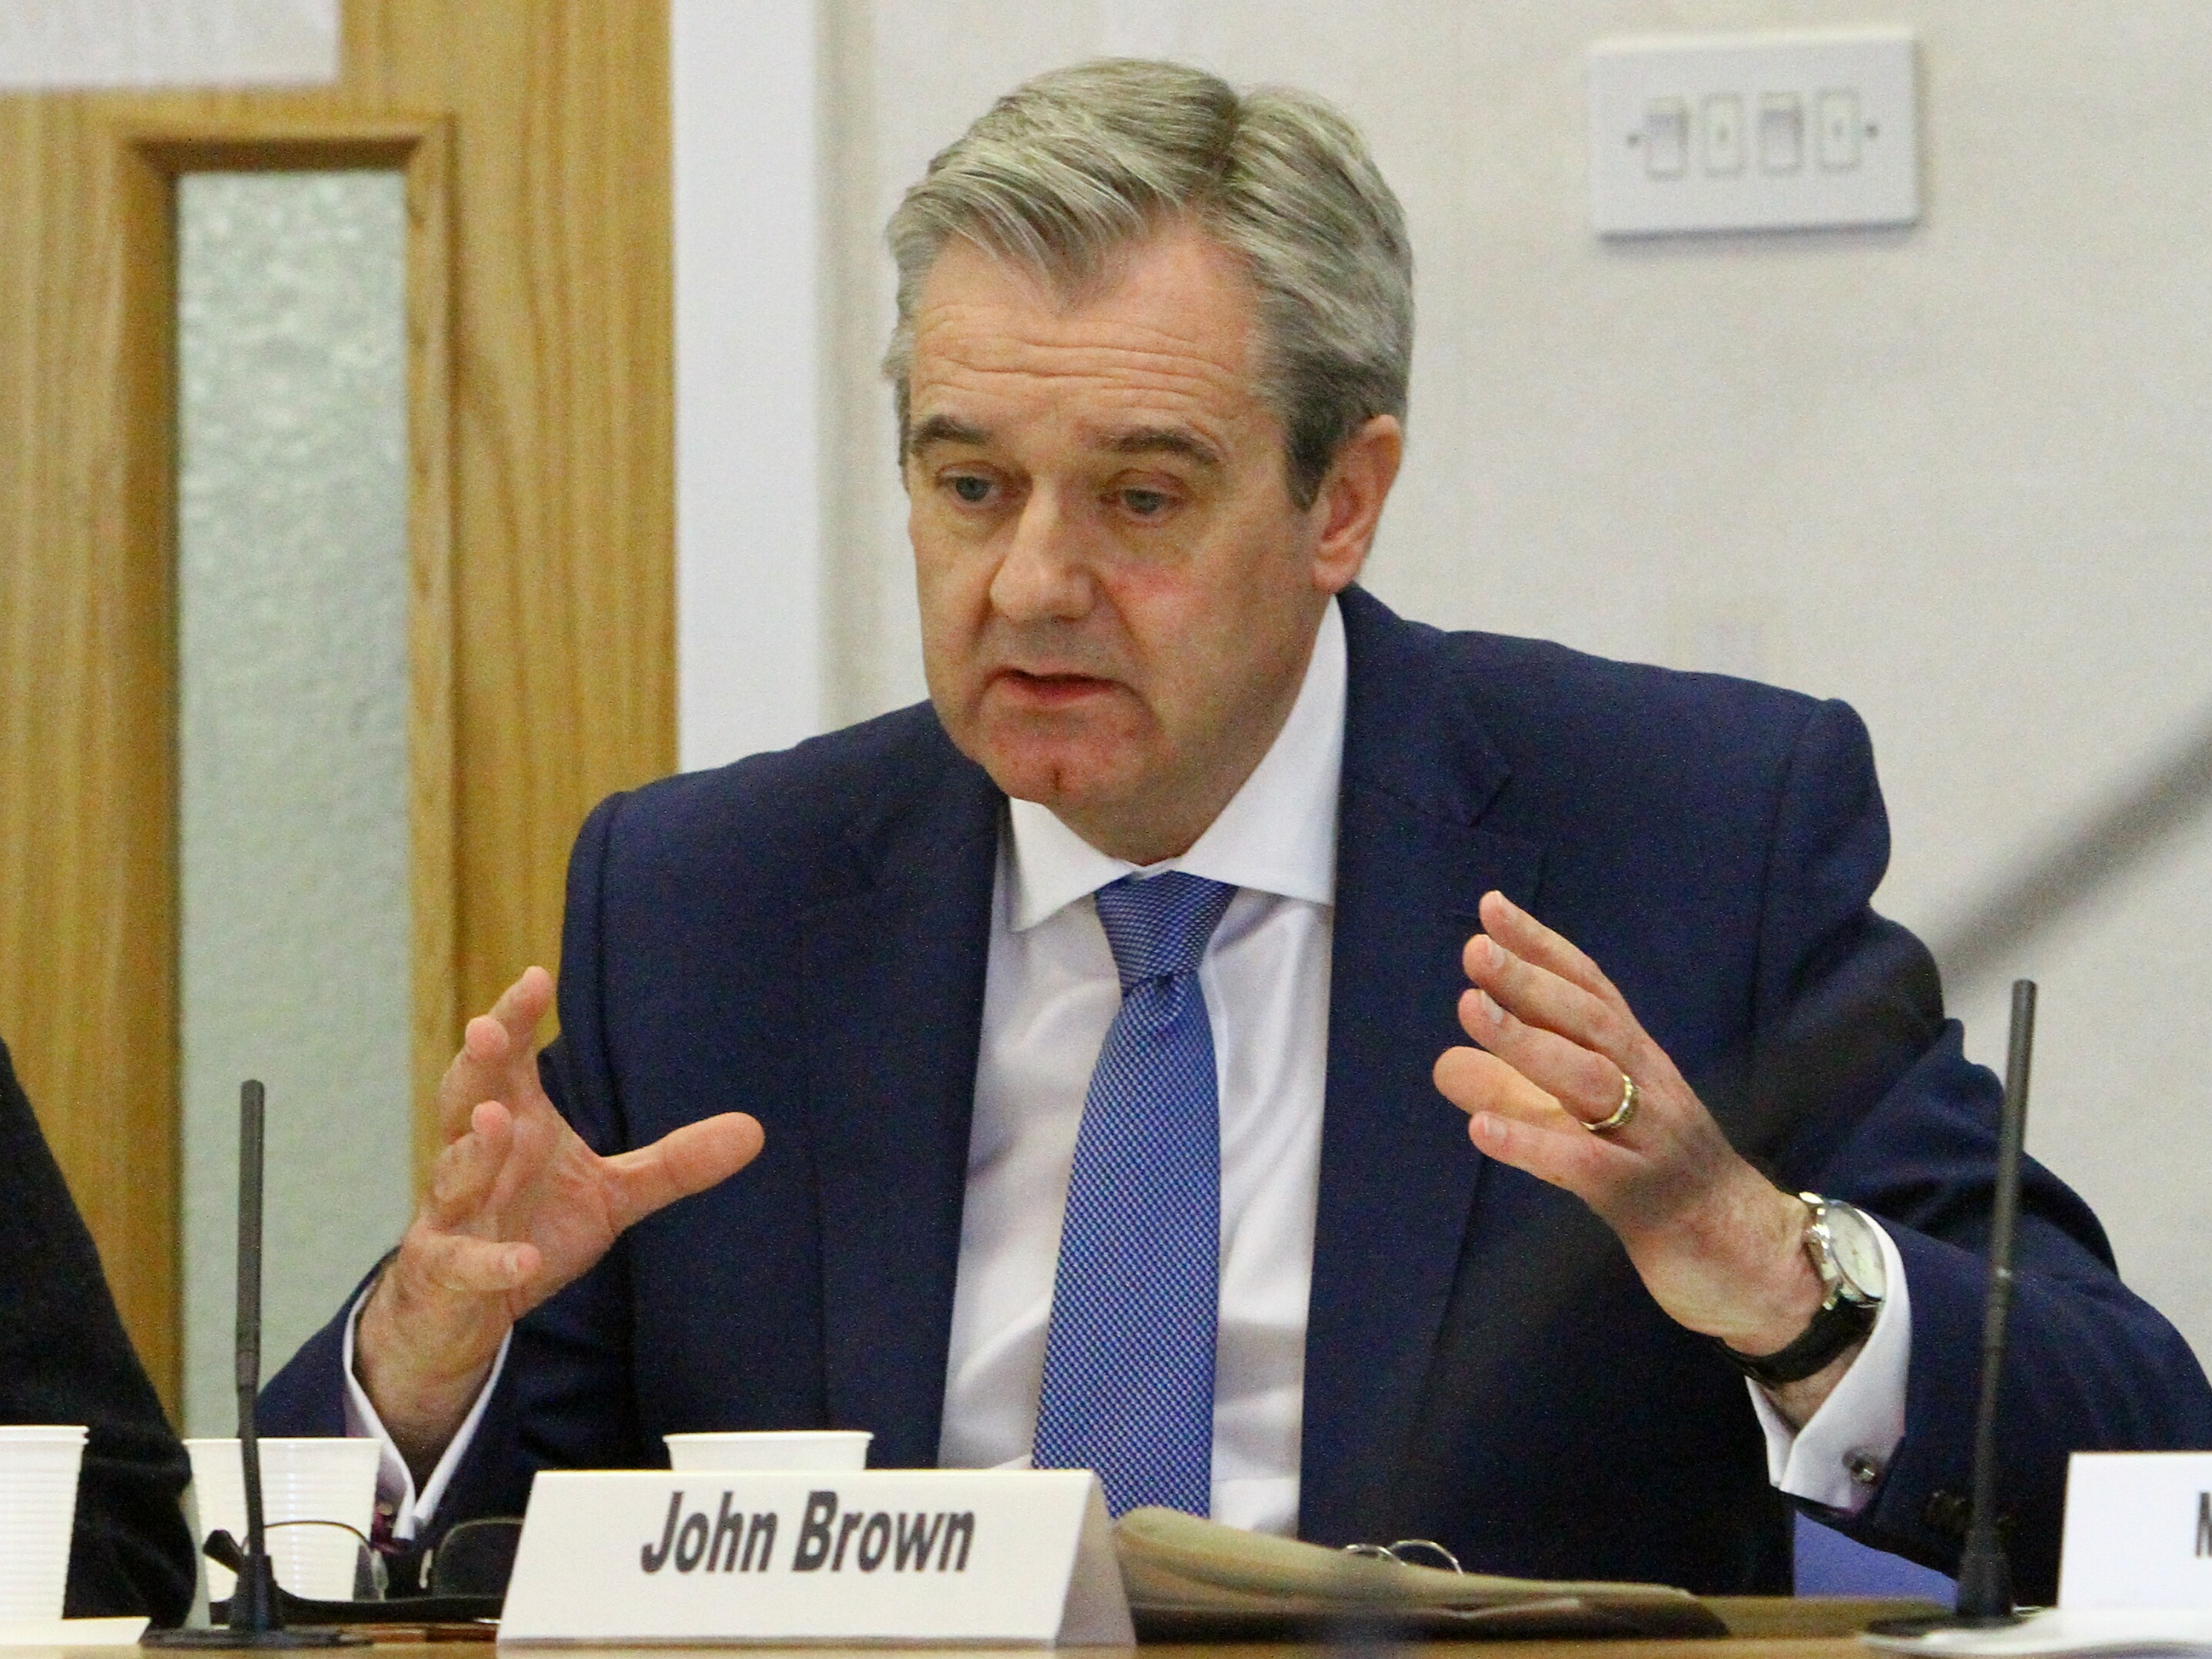 John Brown, chairman of NHS Tayside